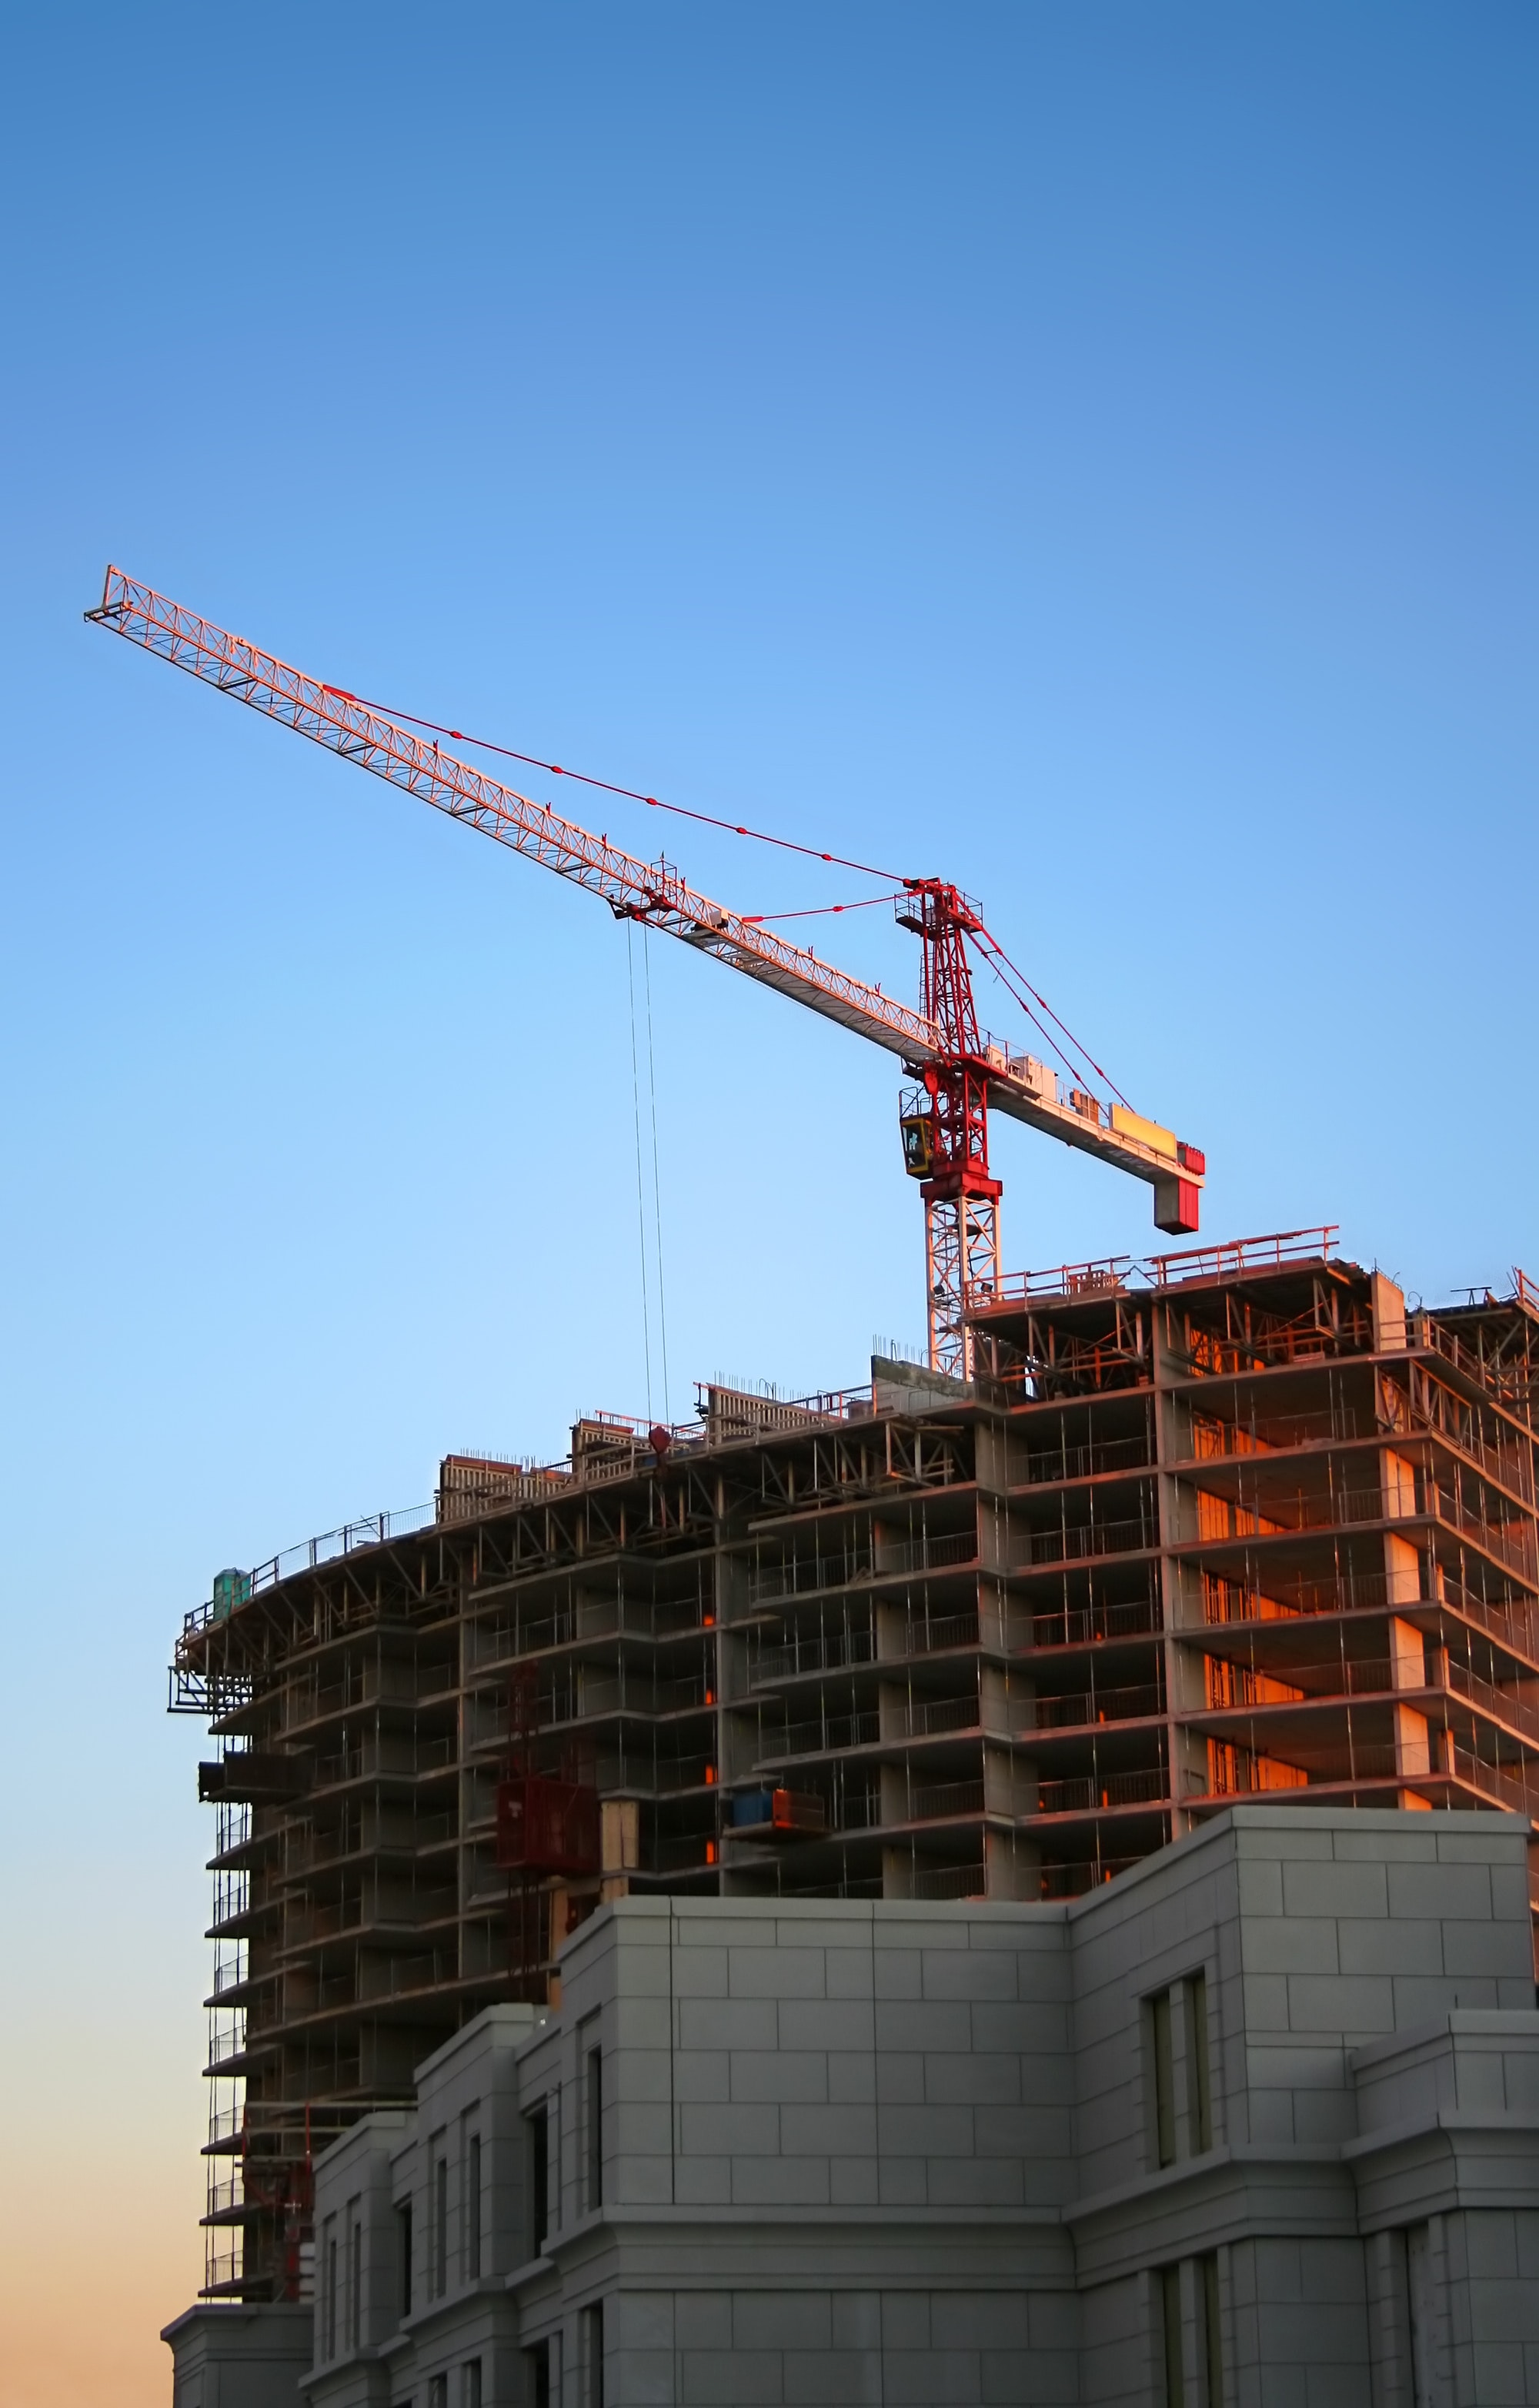 Tower Crane during Daytime, Building, Construction, Crane, HQ Photo